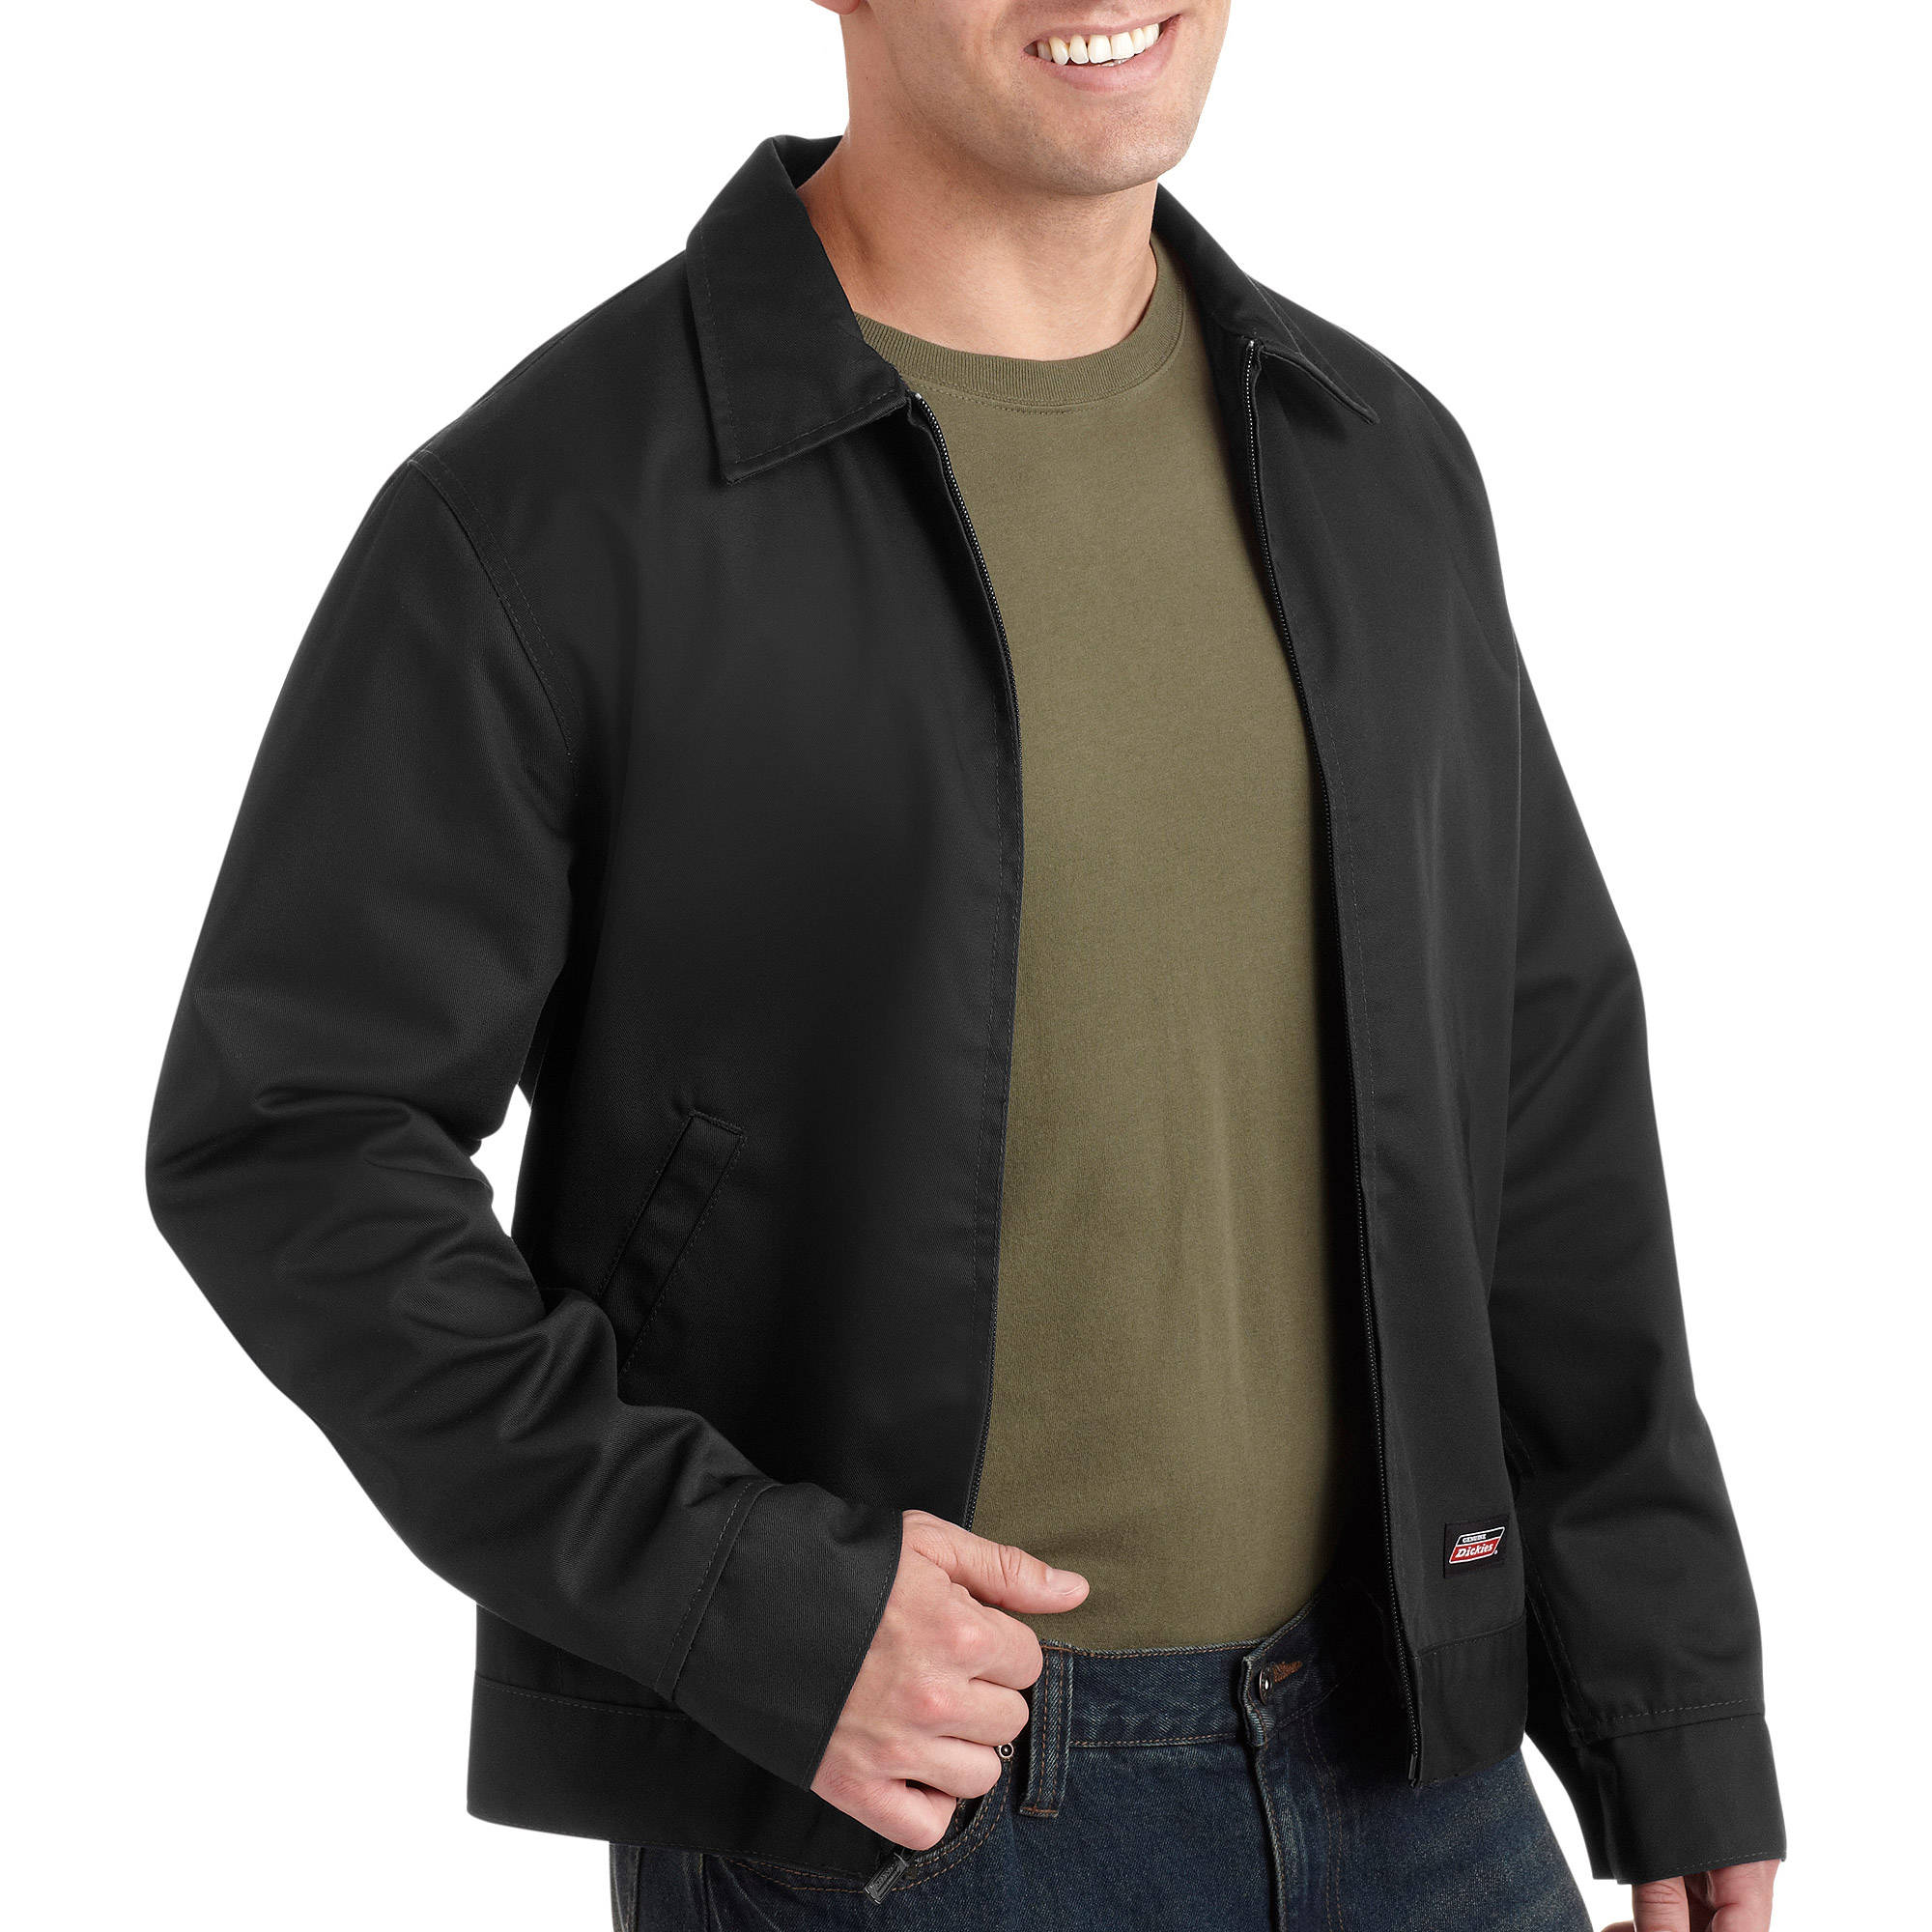 Genuine Dickies Men's Lined Service Jacket